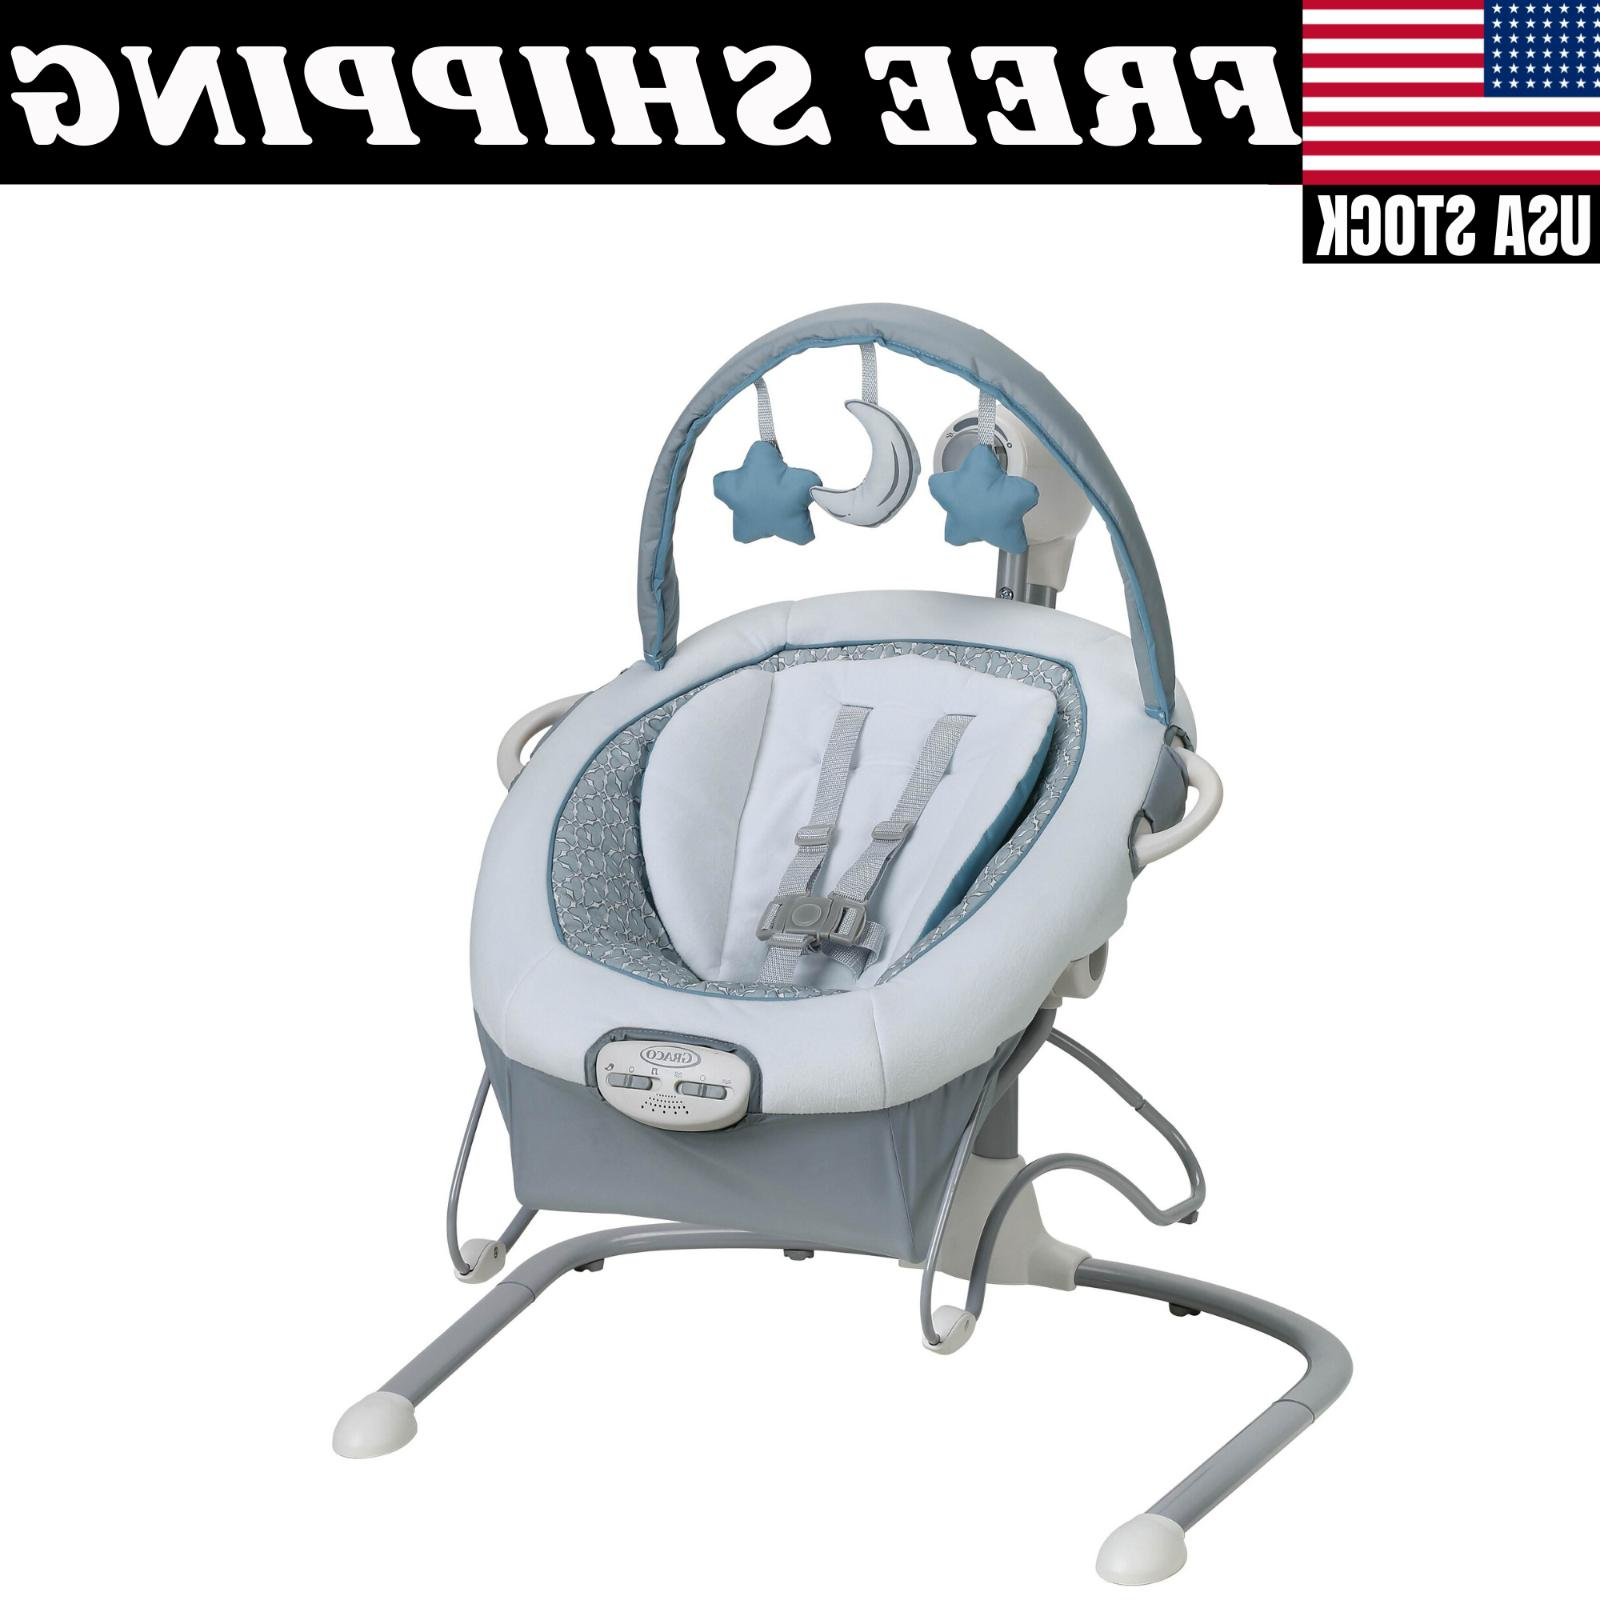 duet sway lx baby swing portable bouncer